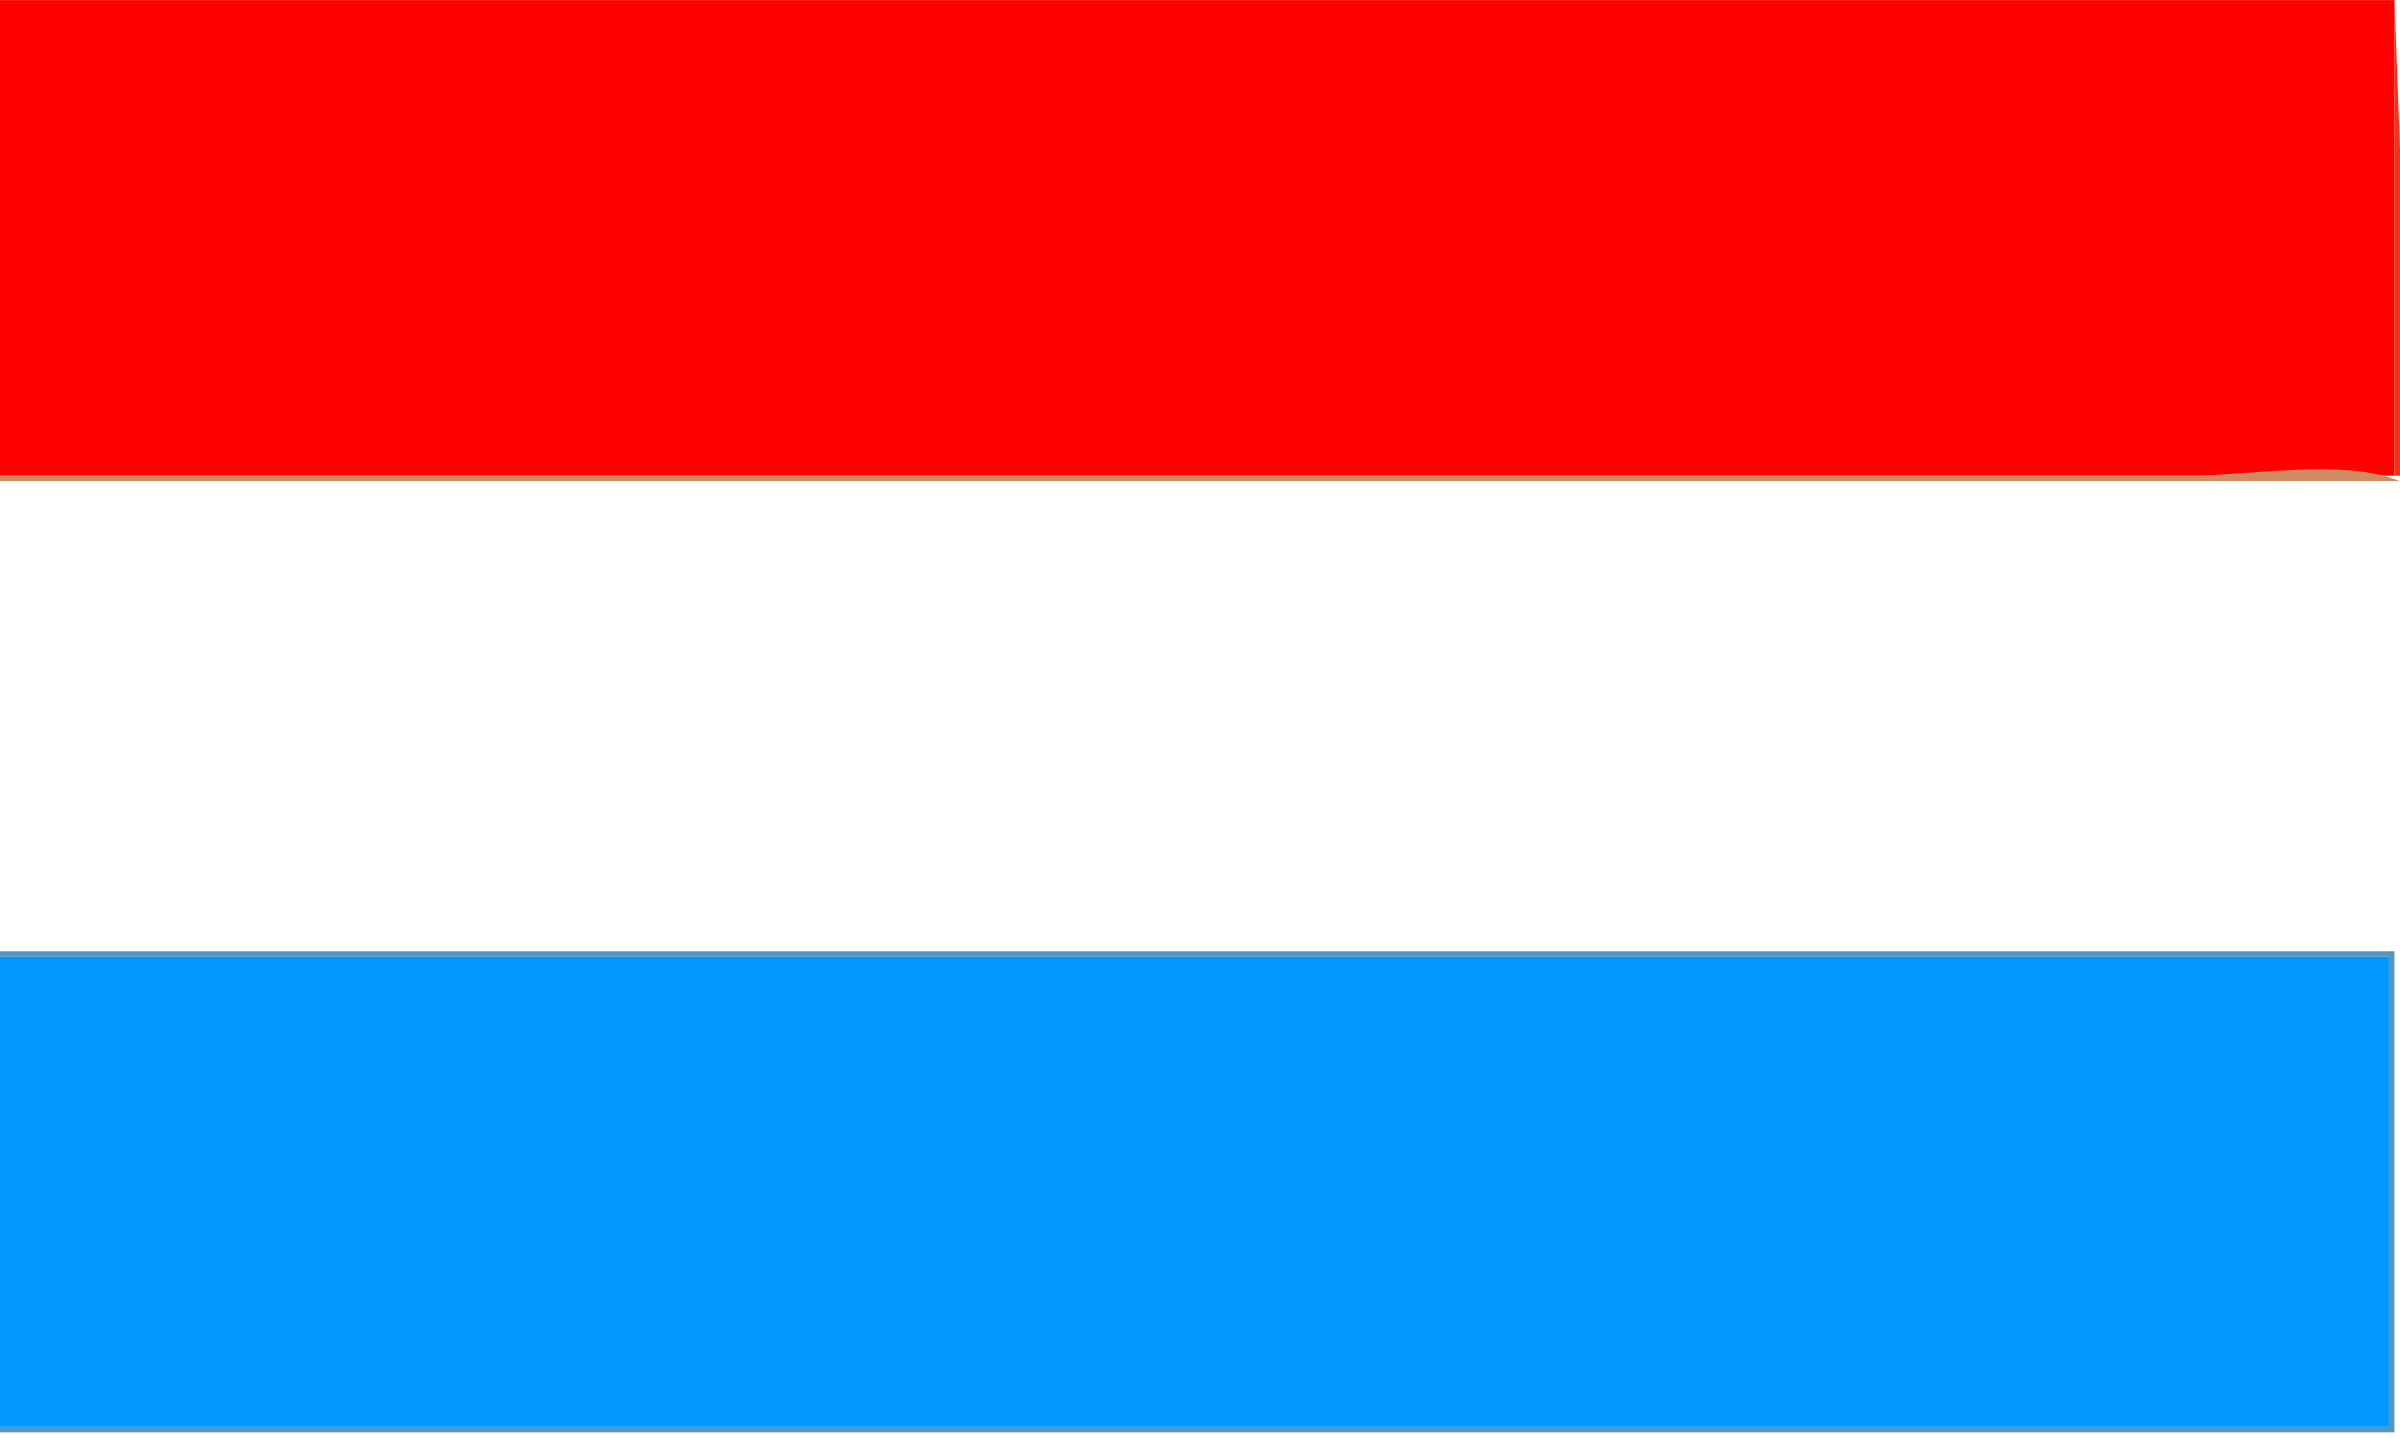 Flag of Luxemburg by Joesph